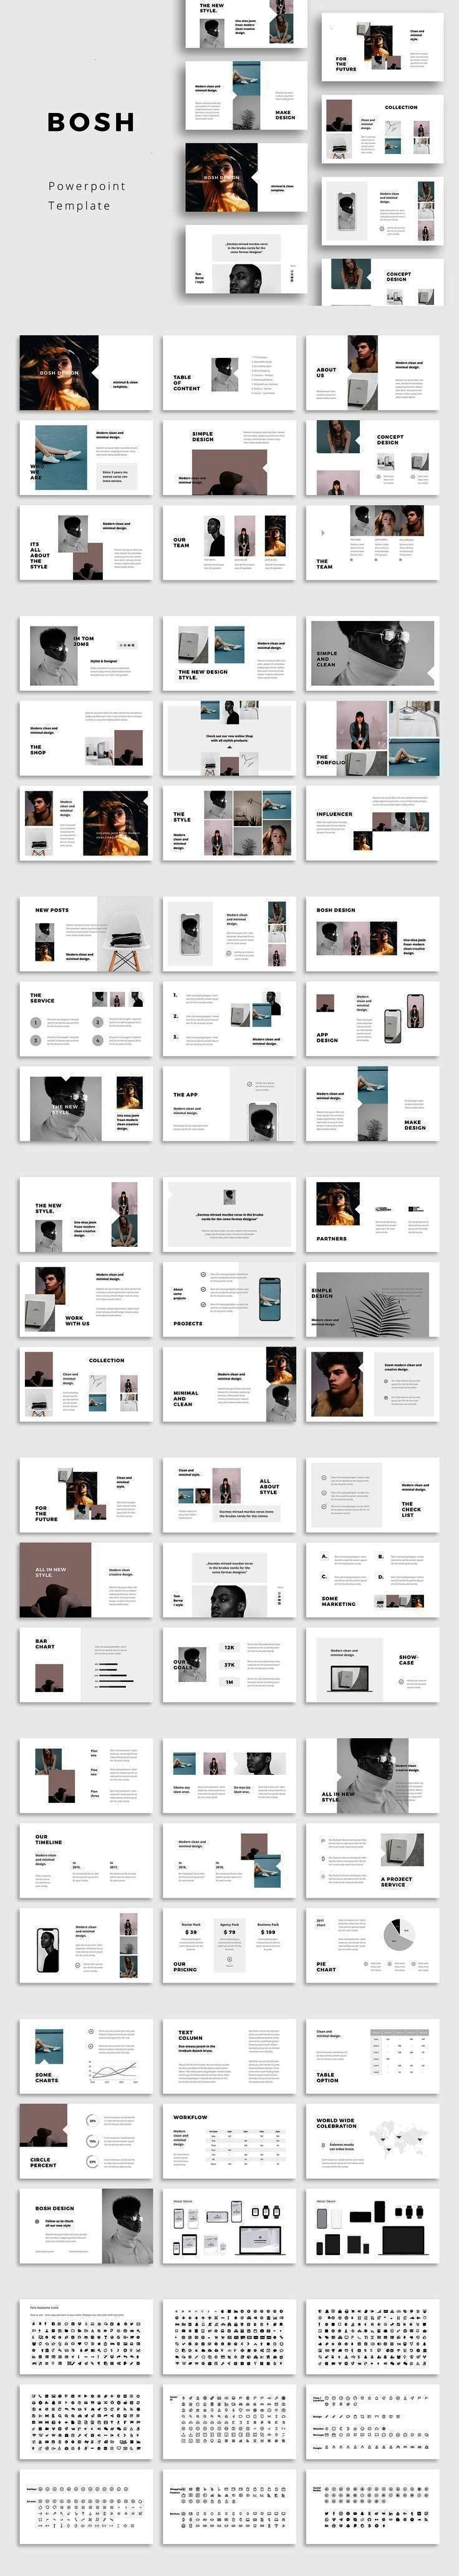 Powerpoint Template BOSH  Powerpoint Template by PixaSquare on creativemarket minimalBOSH  Powerpoint Template by PixaSquare on creativemarket minimal Powerpoint Template...